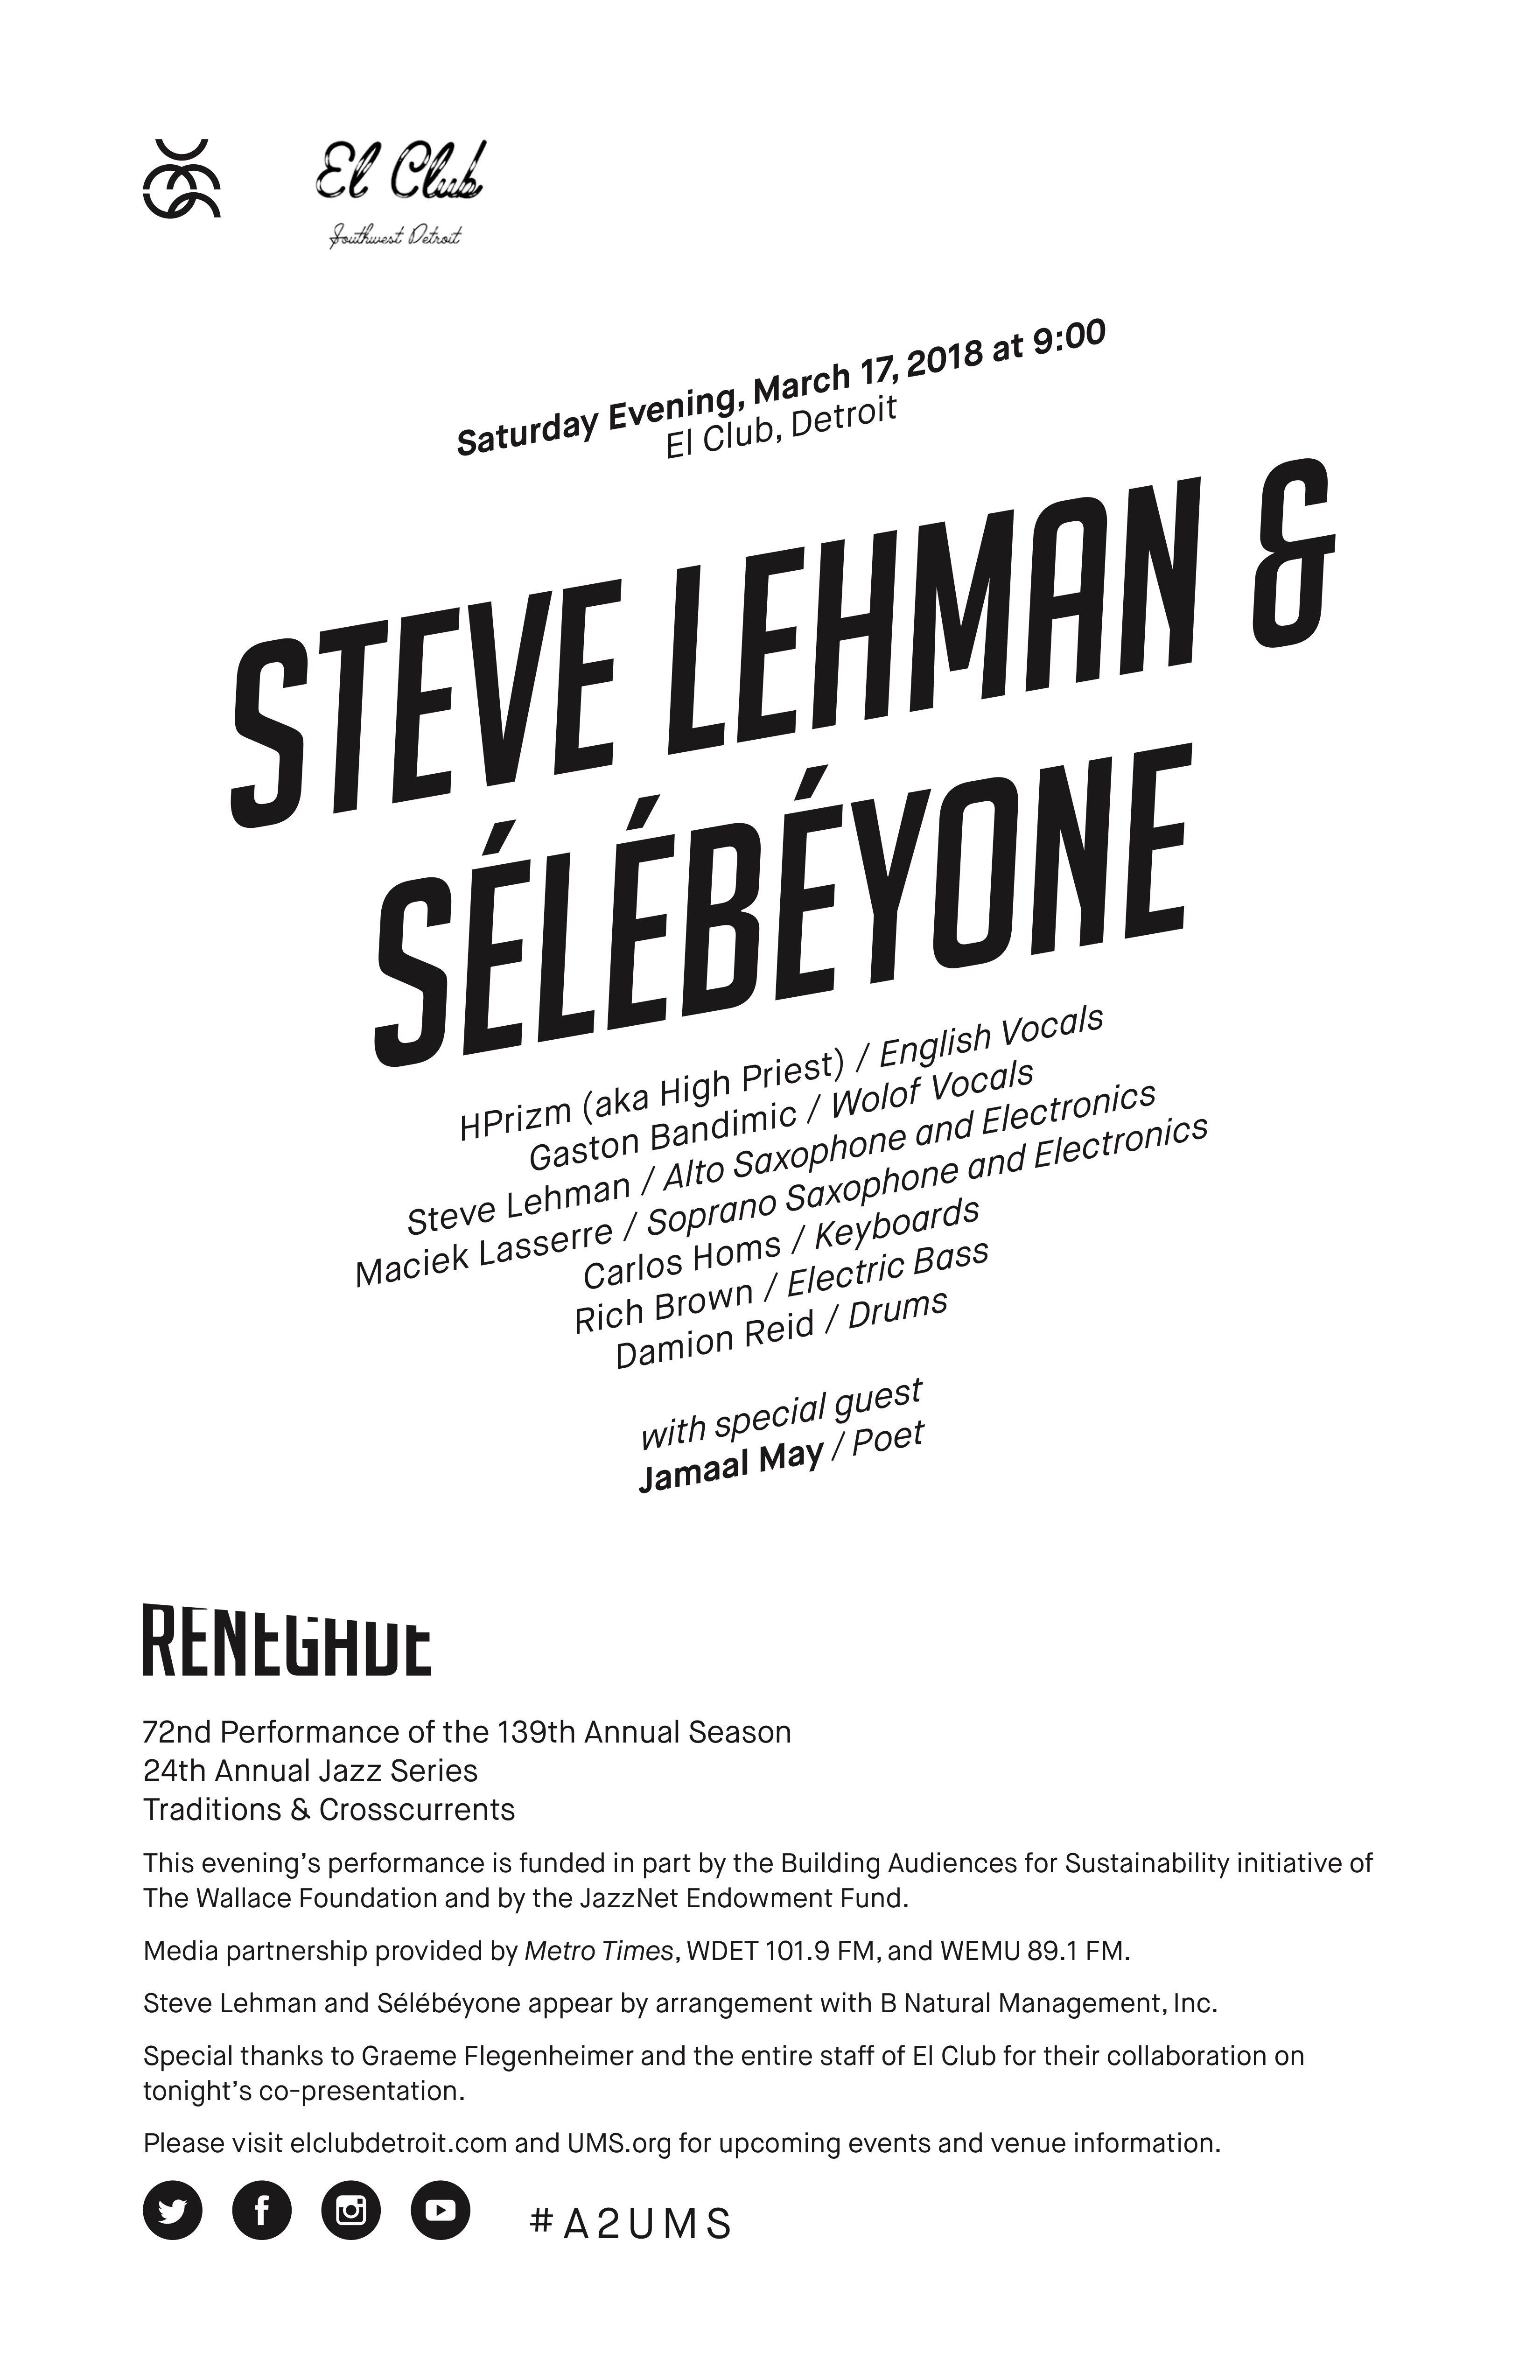 UMS Concert Program, March 17, 2018 - Steve Lehman & Sélébéyone image